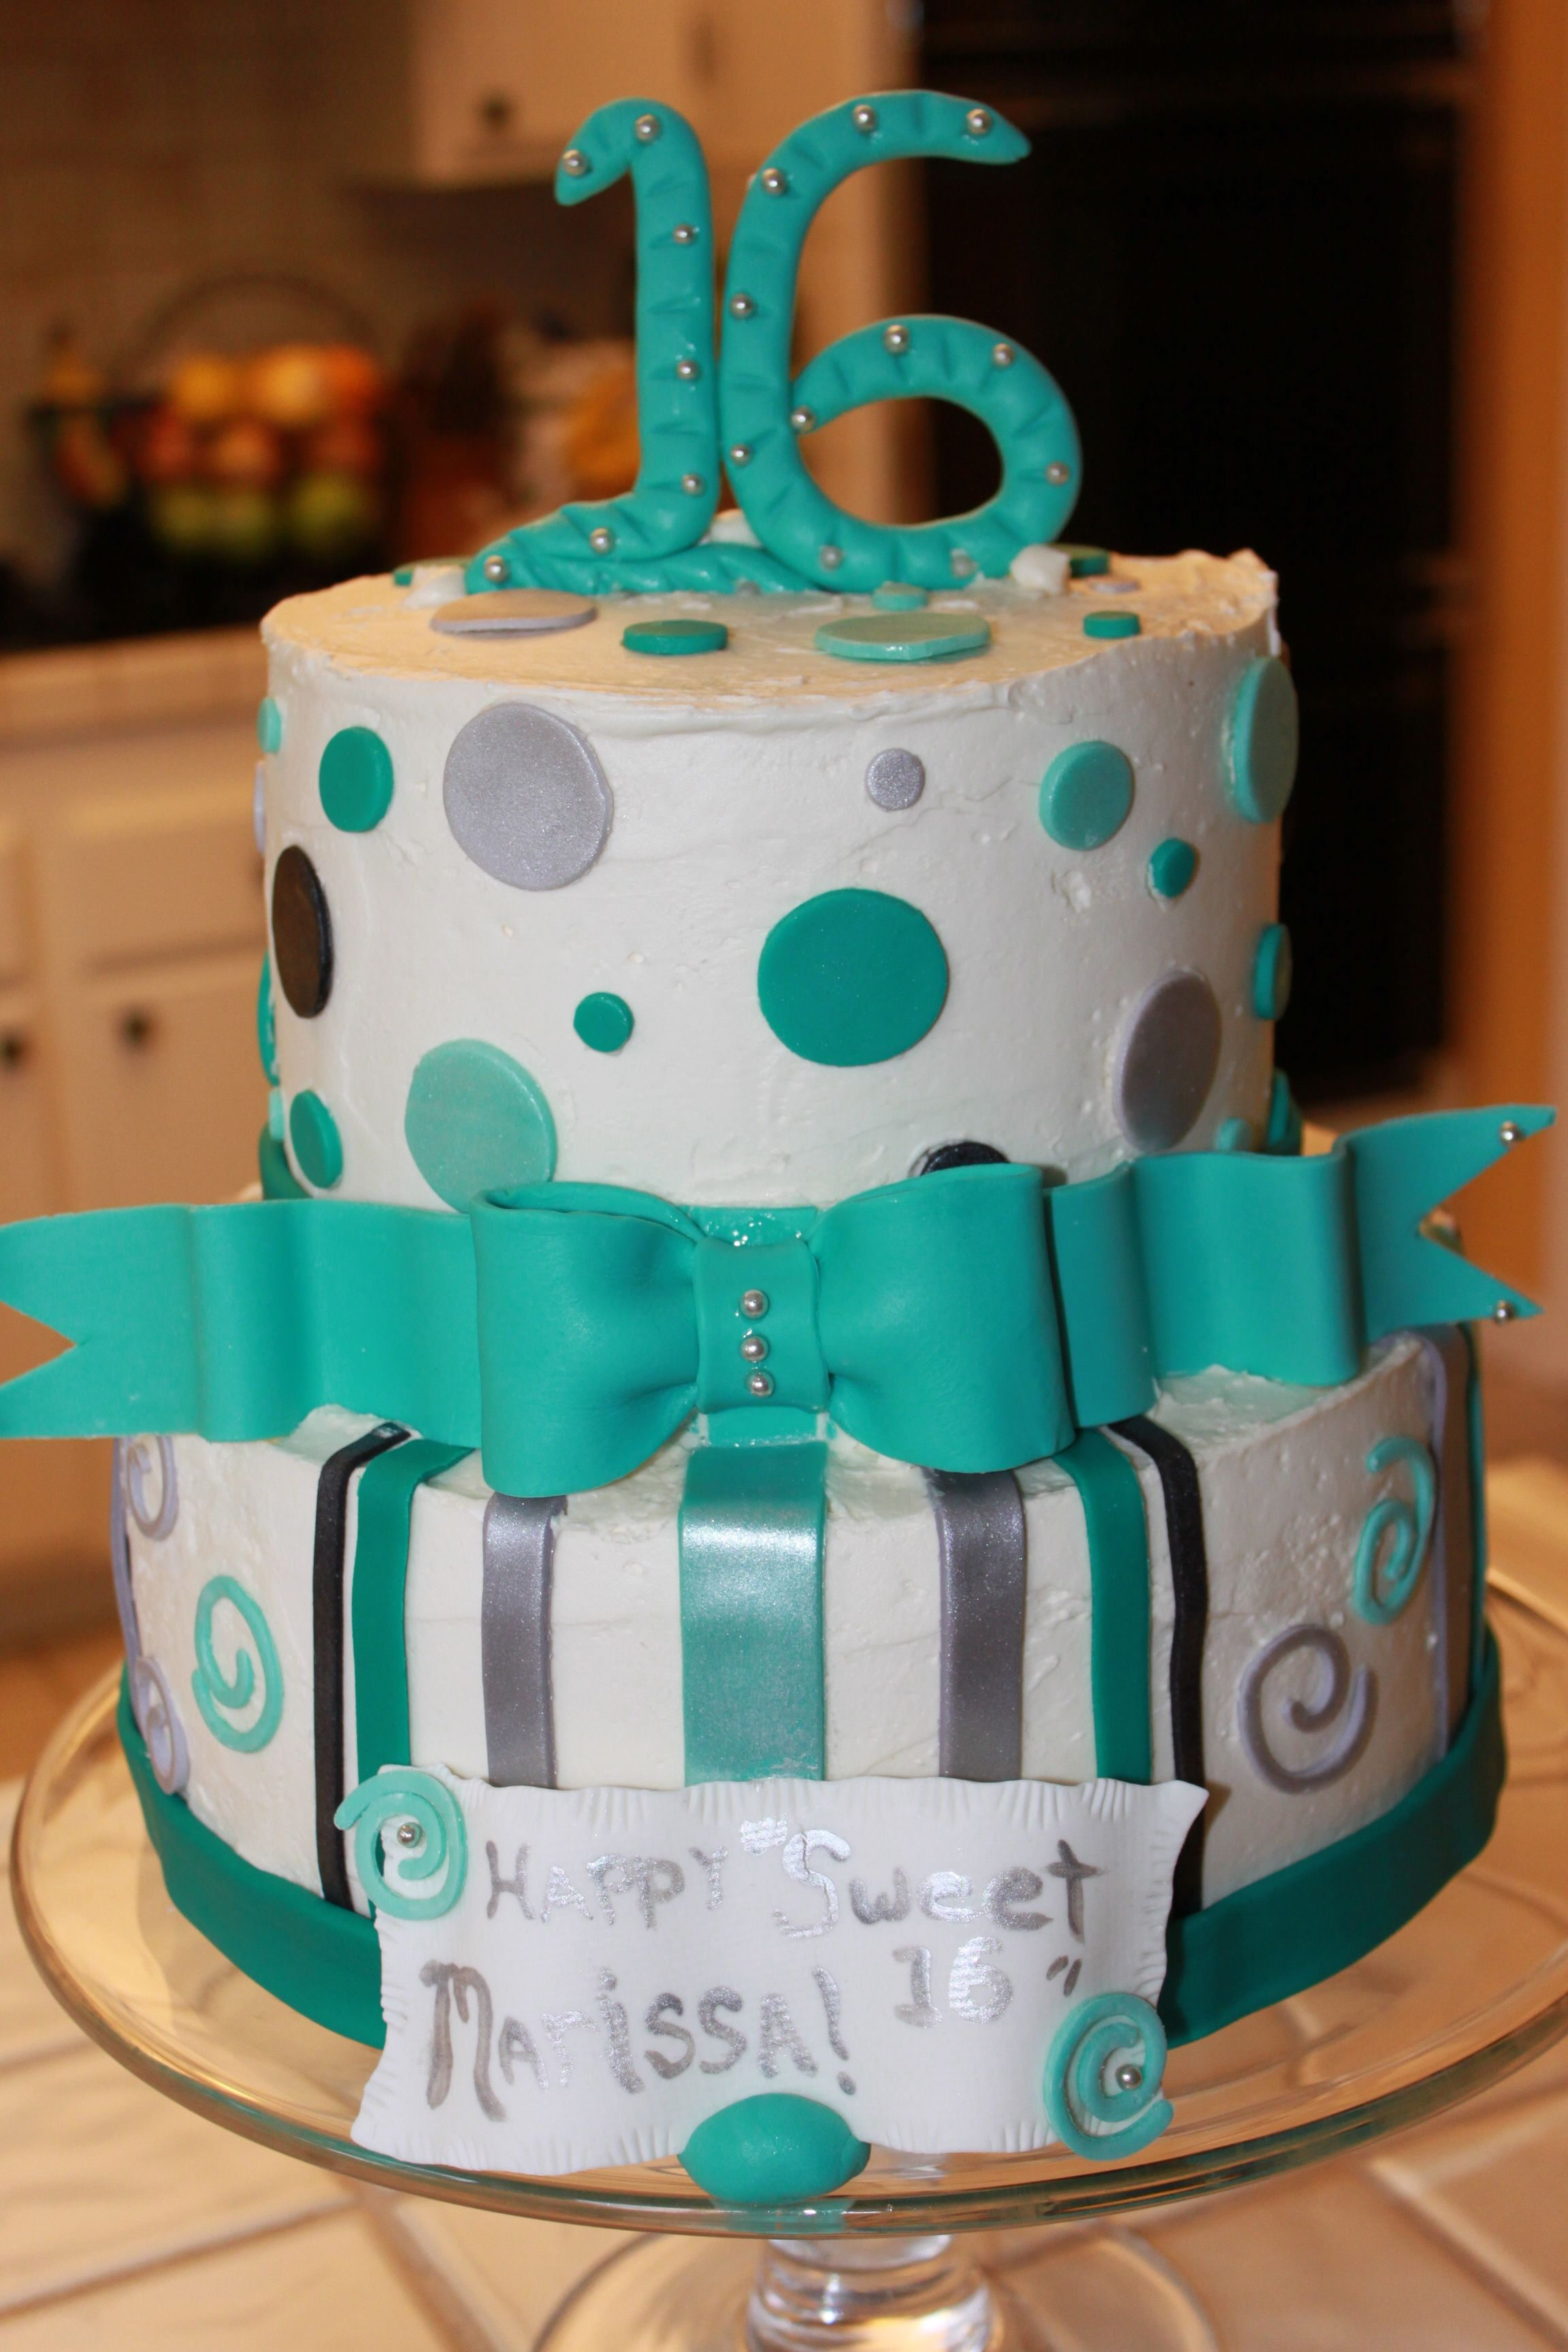 Awesome Marissas Sweet 16 Birthday Cake With Polka Dots And Bow Aqua And Personalised Birthday Cards Sponlily Jamesorg